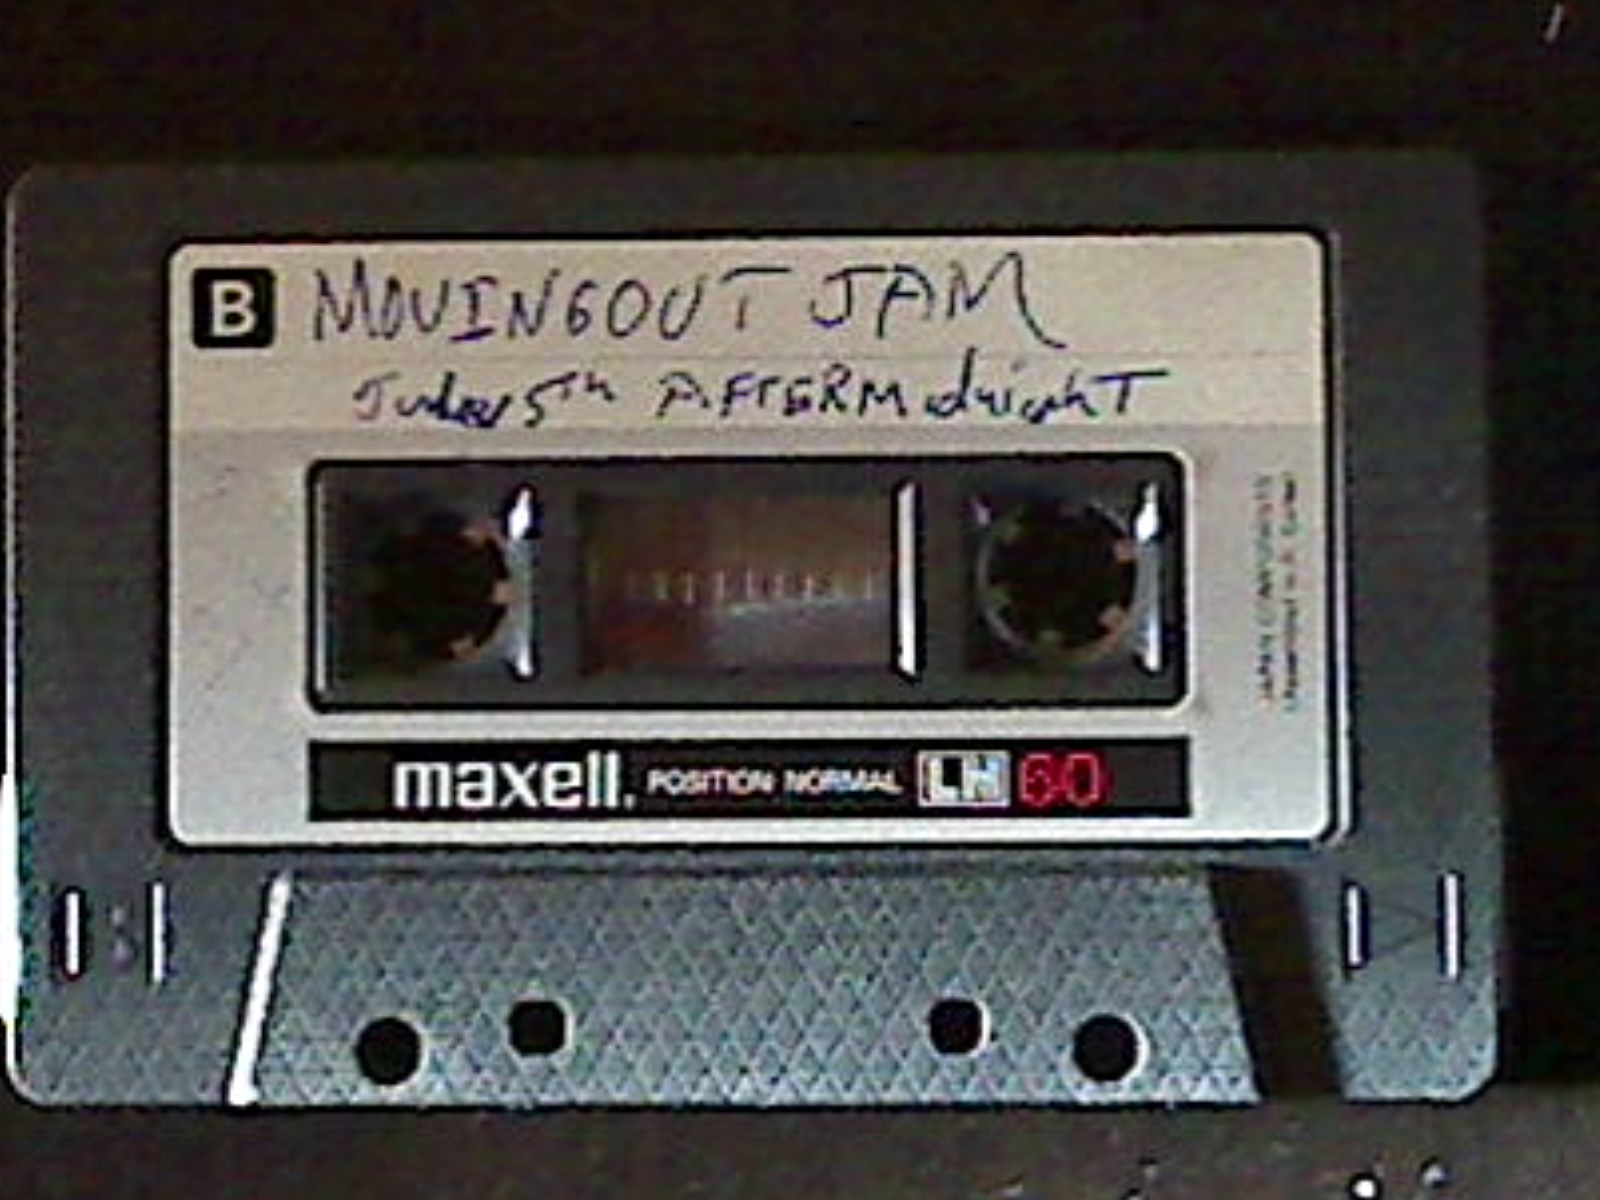 1985-07-05 - Moving Out Jam Me B